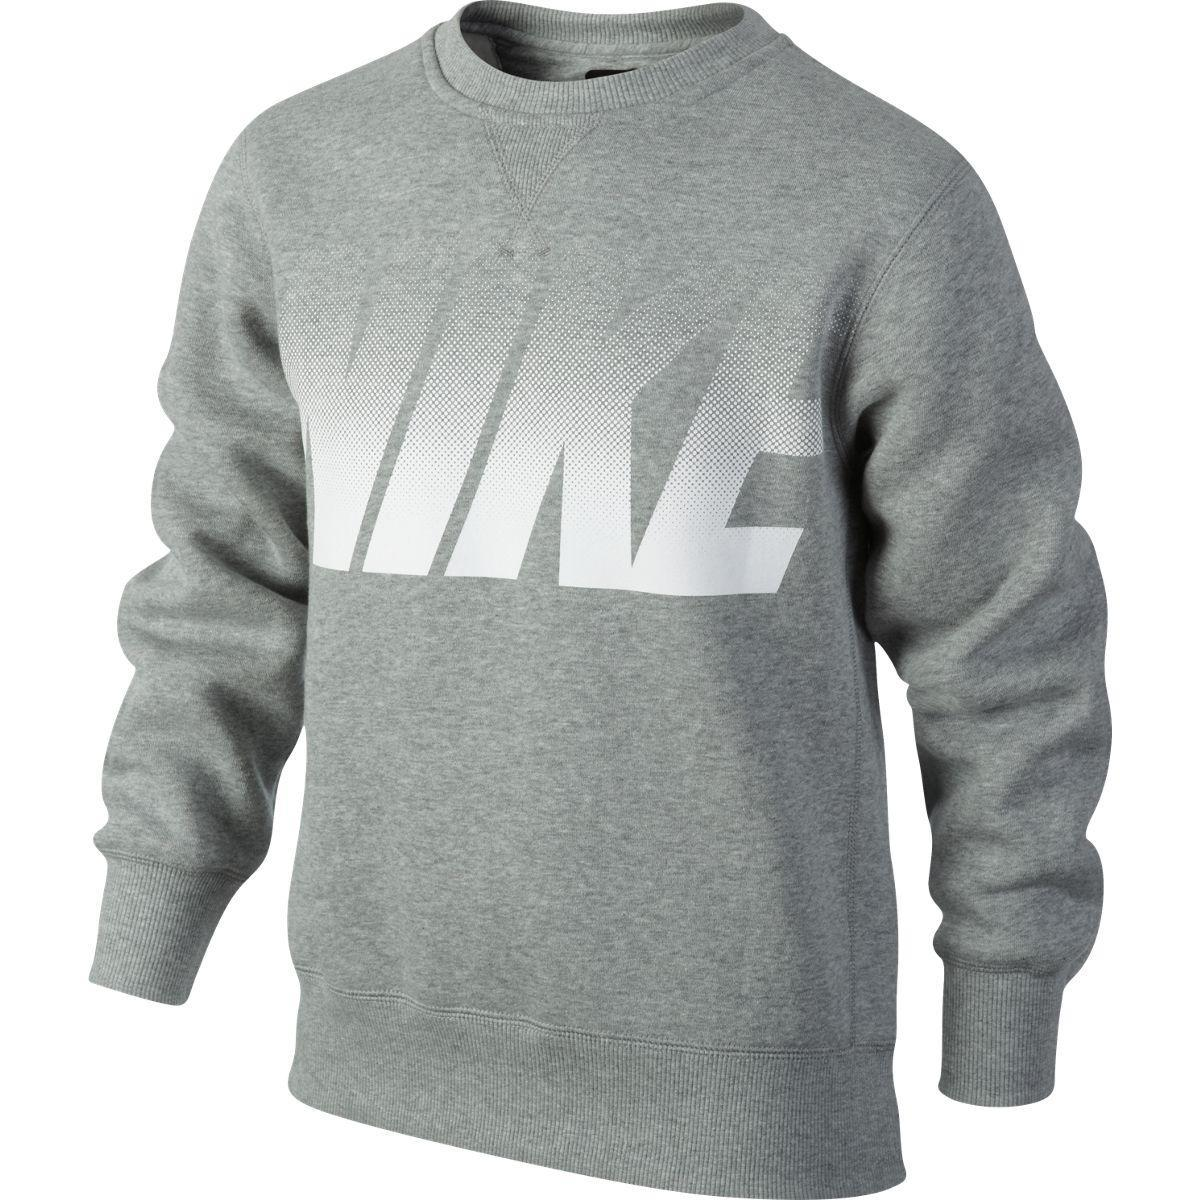 Nike Boys YA76 Graphic Sweater - Grey - Tennisnuts.com